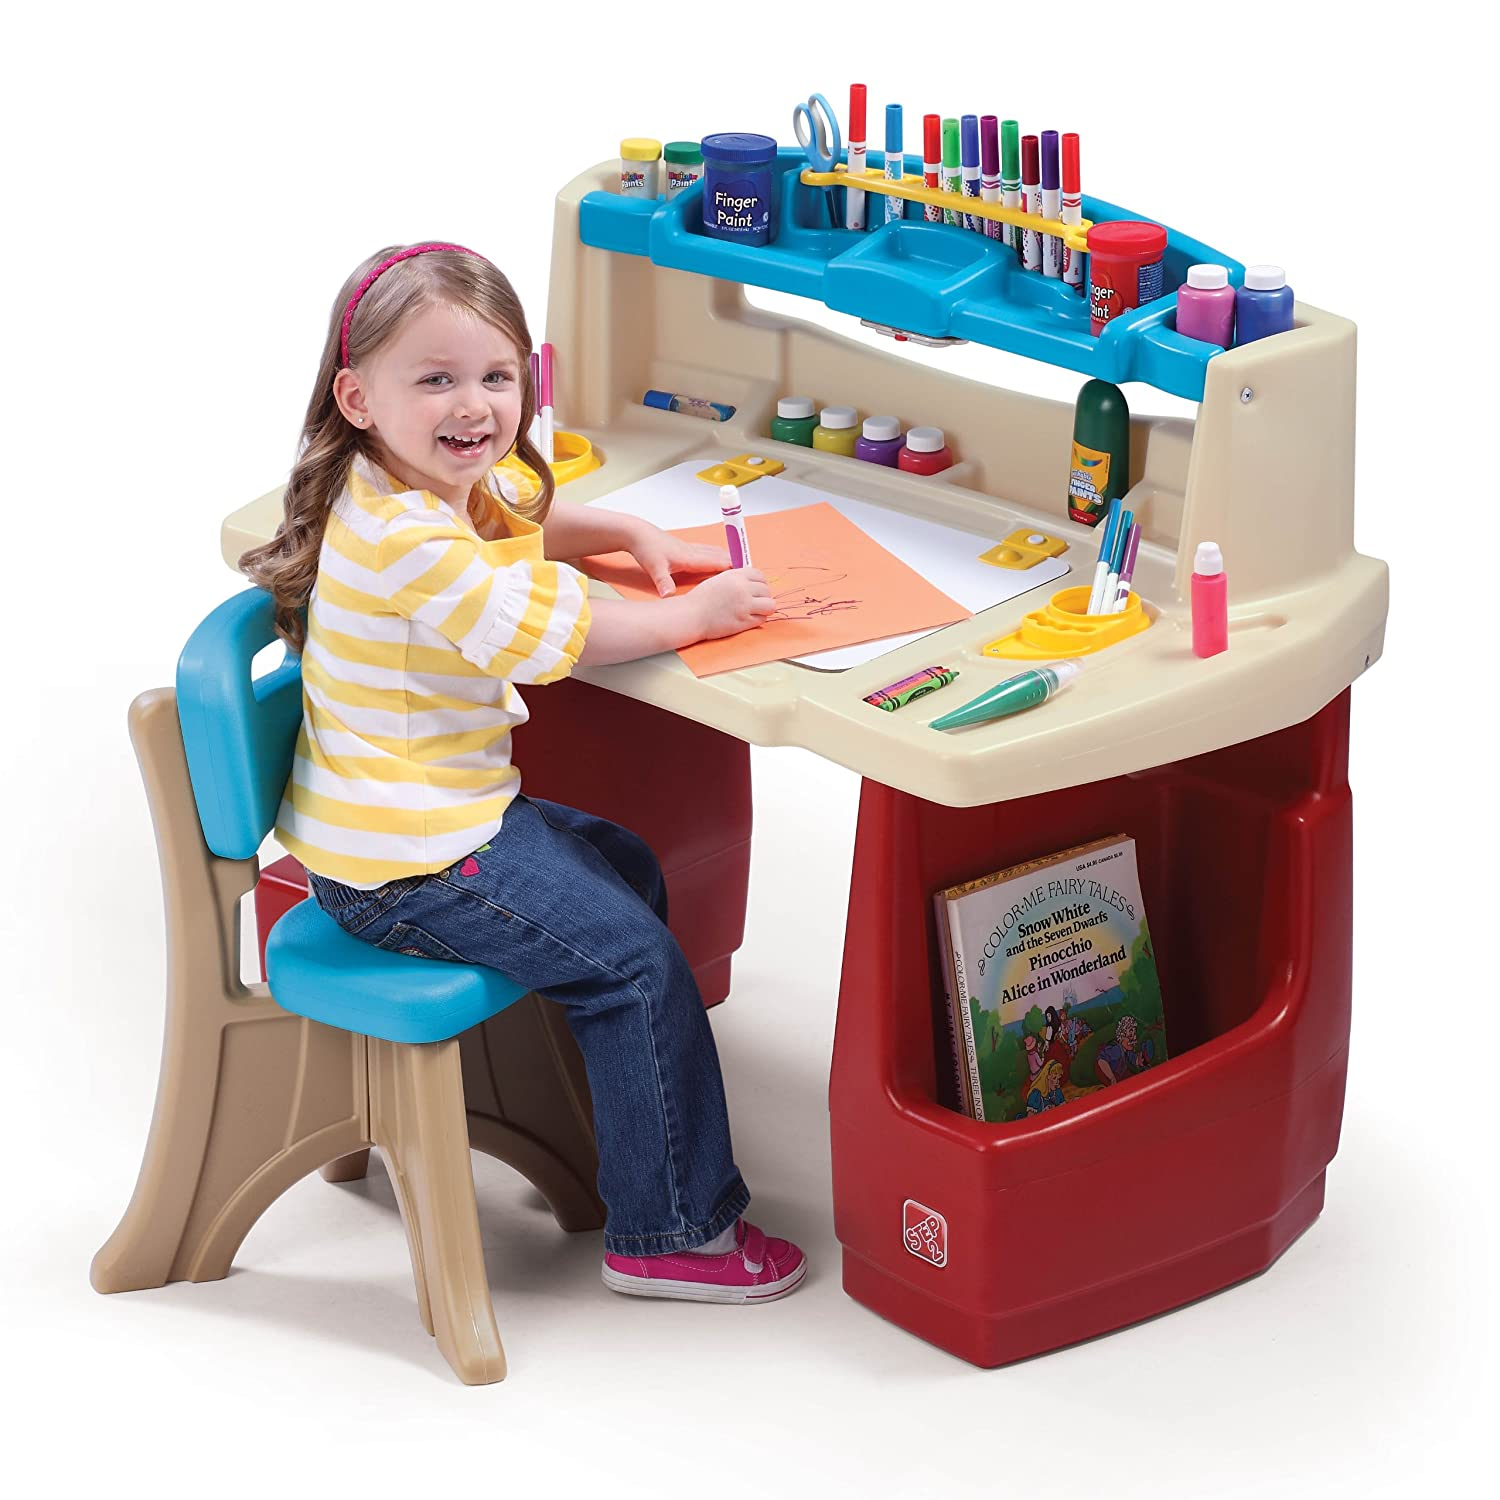 amazoncom step2 deluxe art master desk toys games